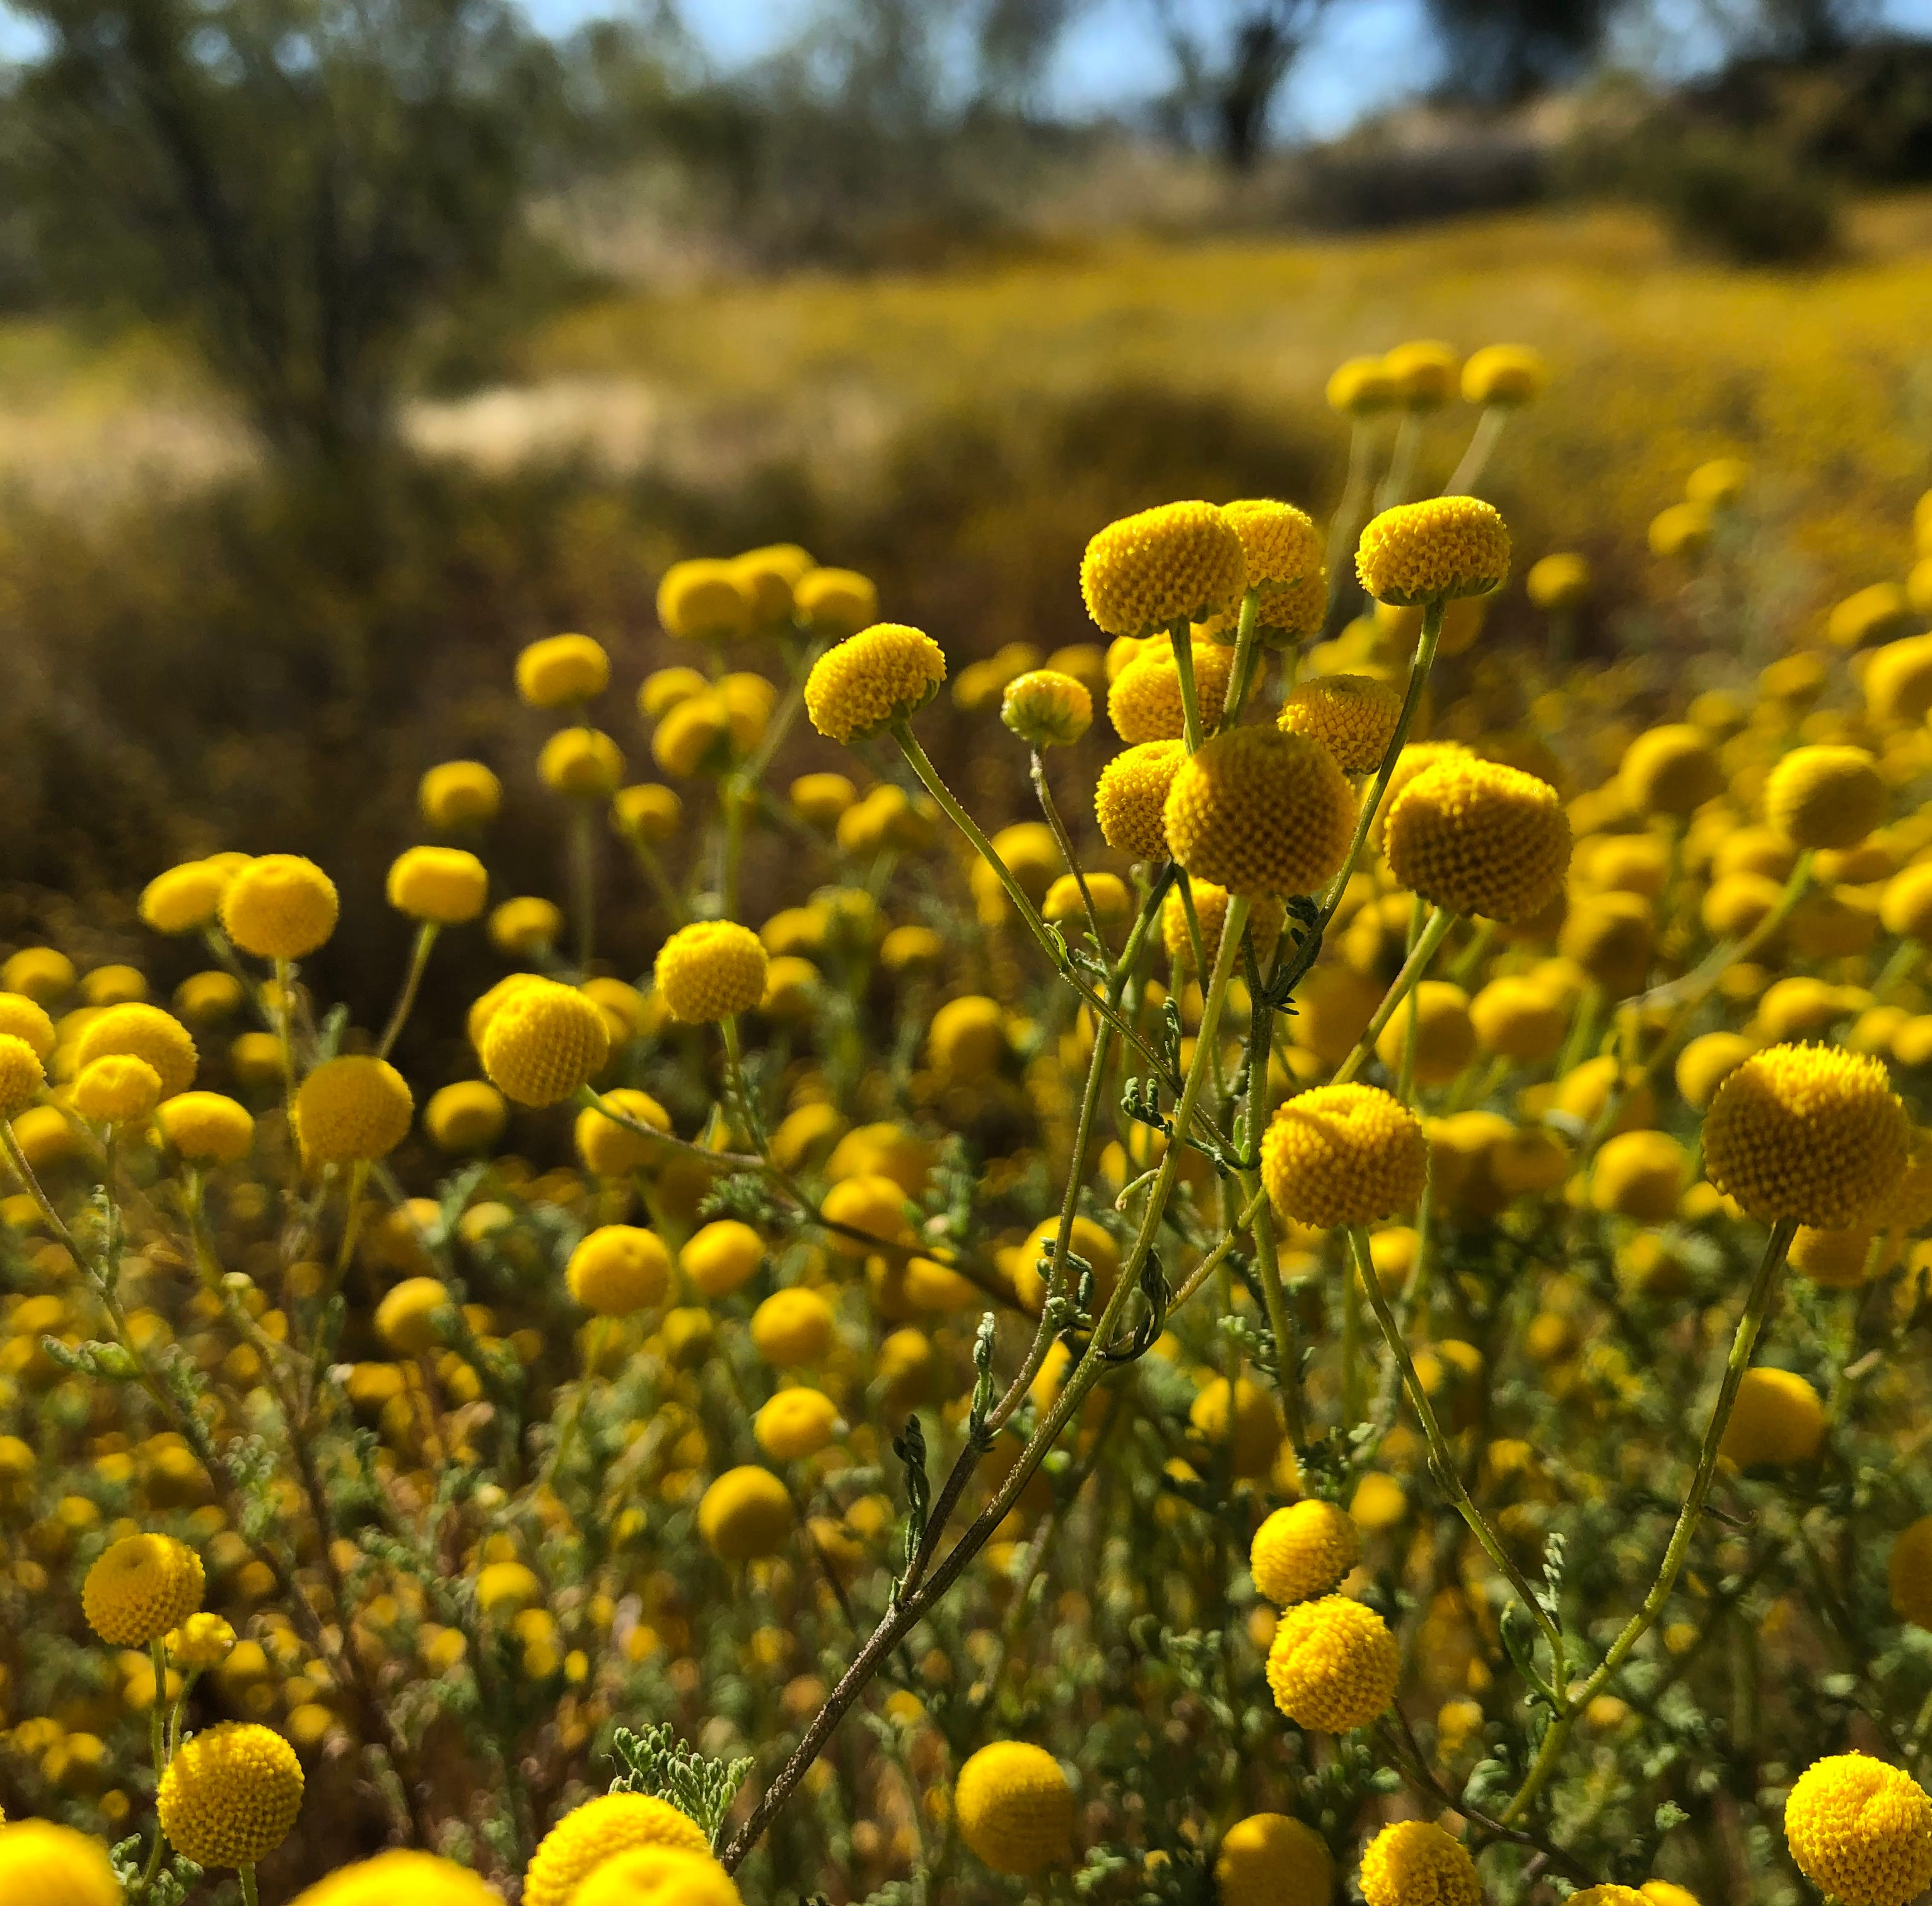 Instagram-friendly flowers are taking over the Phoenix area. One problem: They're invasive weeds